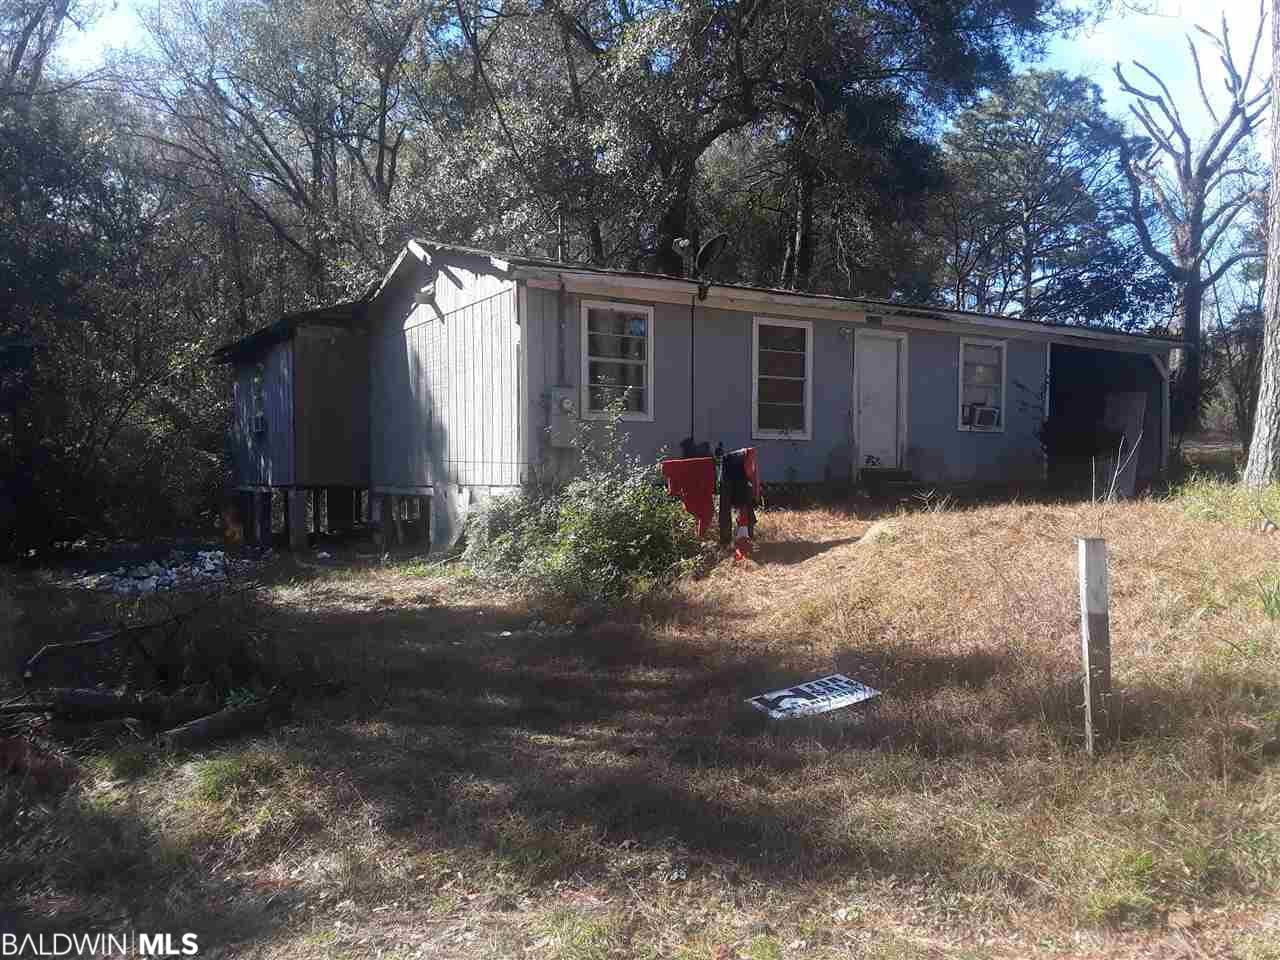 "An awesome opportunity to own a 3 bedroom 1 bath home with 896 sqft on 1 acre in Spanish Ft. This home does have a month to month renter in the property now at 900 a month. Has an old Mobile Home behind the home as well. Both the Home and the Mobile Home are to be Sold "" As Is Where Is "" and at no value. Price is for the land value only. Buy this home and fix it up to live in or as an investment opportunity. Knock it down and build something new. There is a approximately 15.4 acres adjacent to this property as well for 135,000. As well as another Home and 1.9 Acre for sale  at 55,000. You could buy roughly 20 acres, 2 homes and a Mobile Home in the heart of Spanish Ft for 235,000."